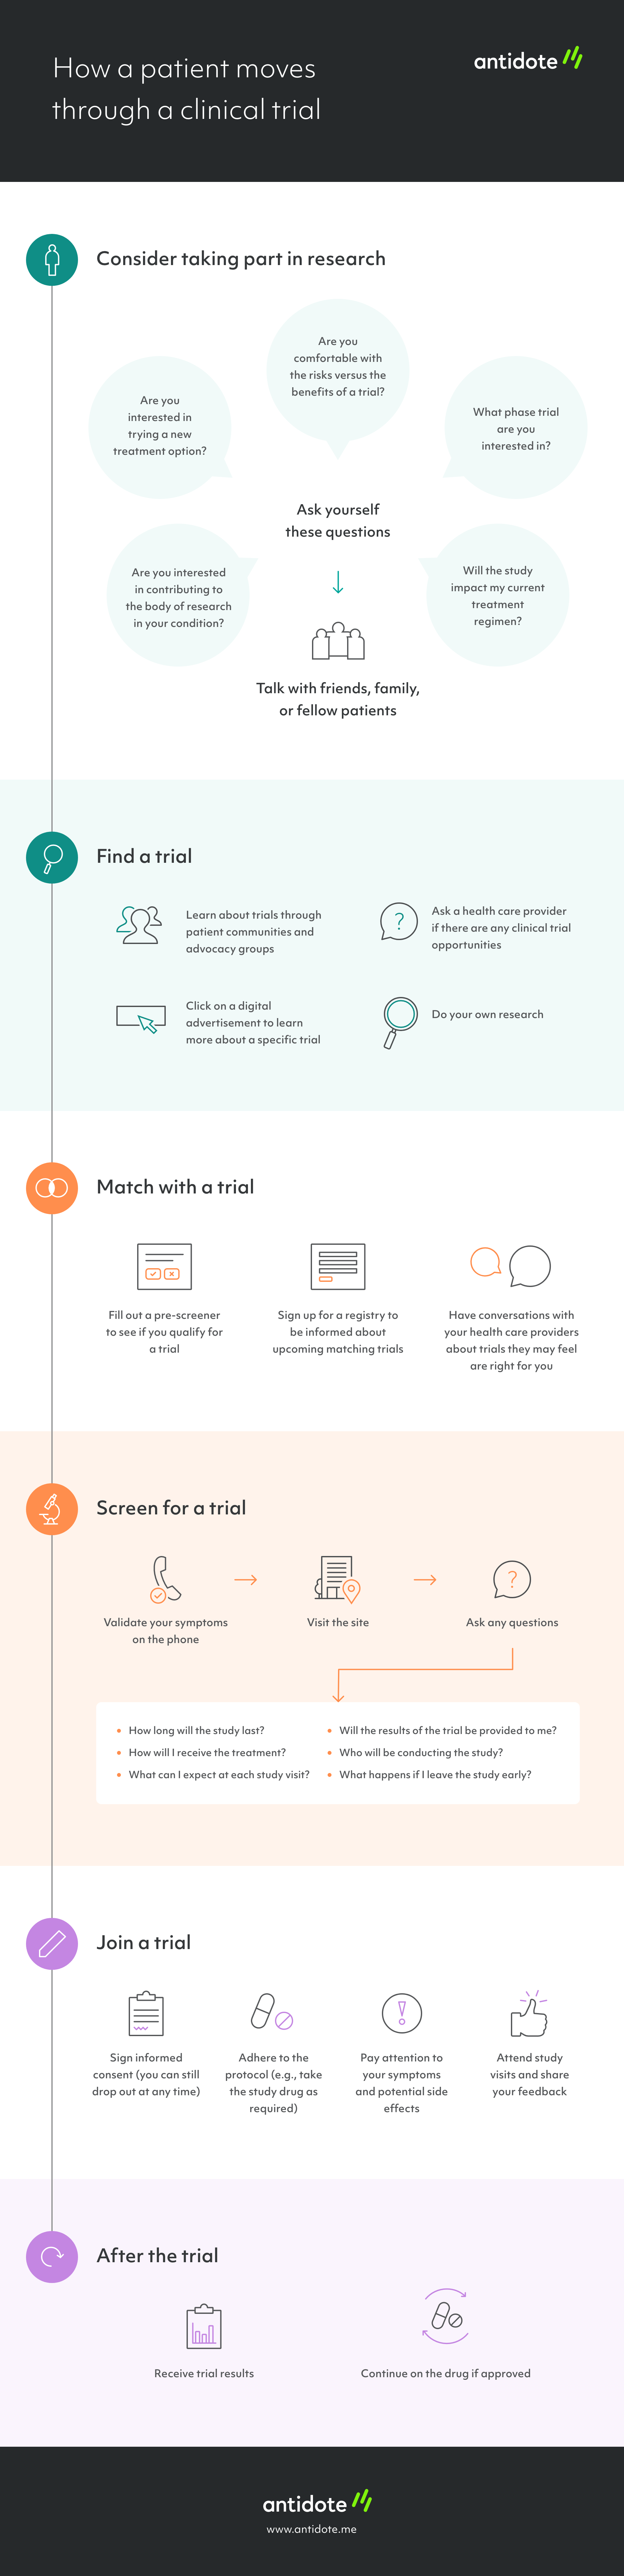 How a patient moves through a clinical trial [infographic]